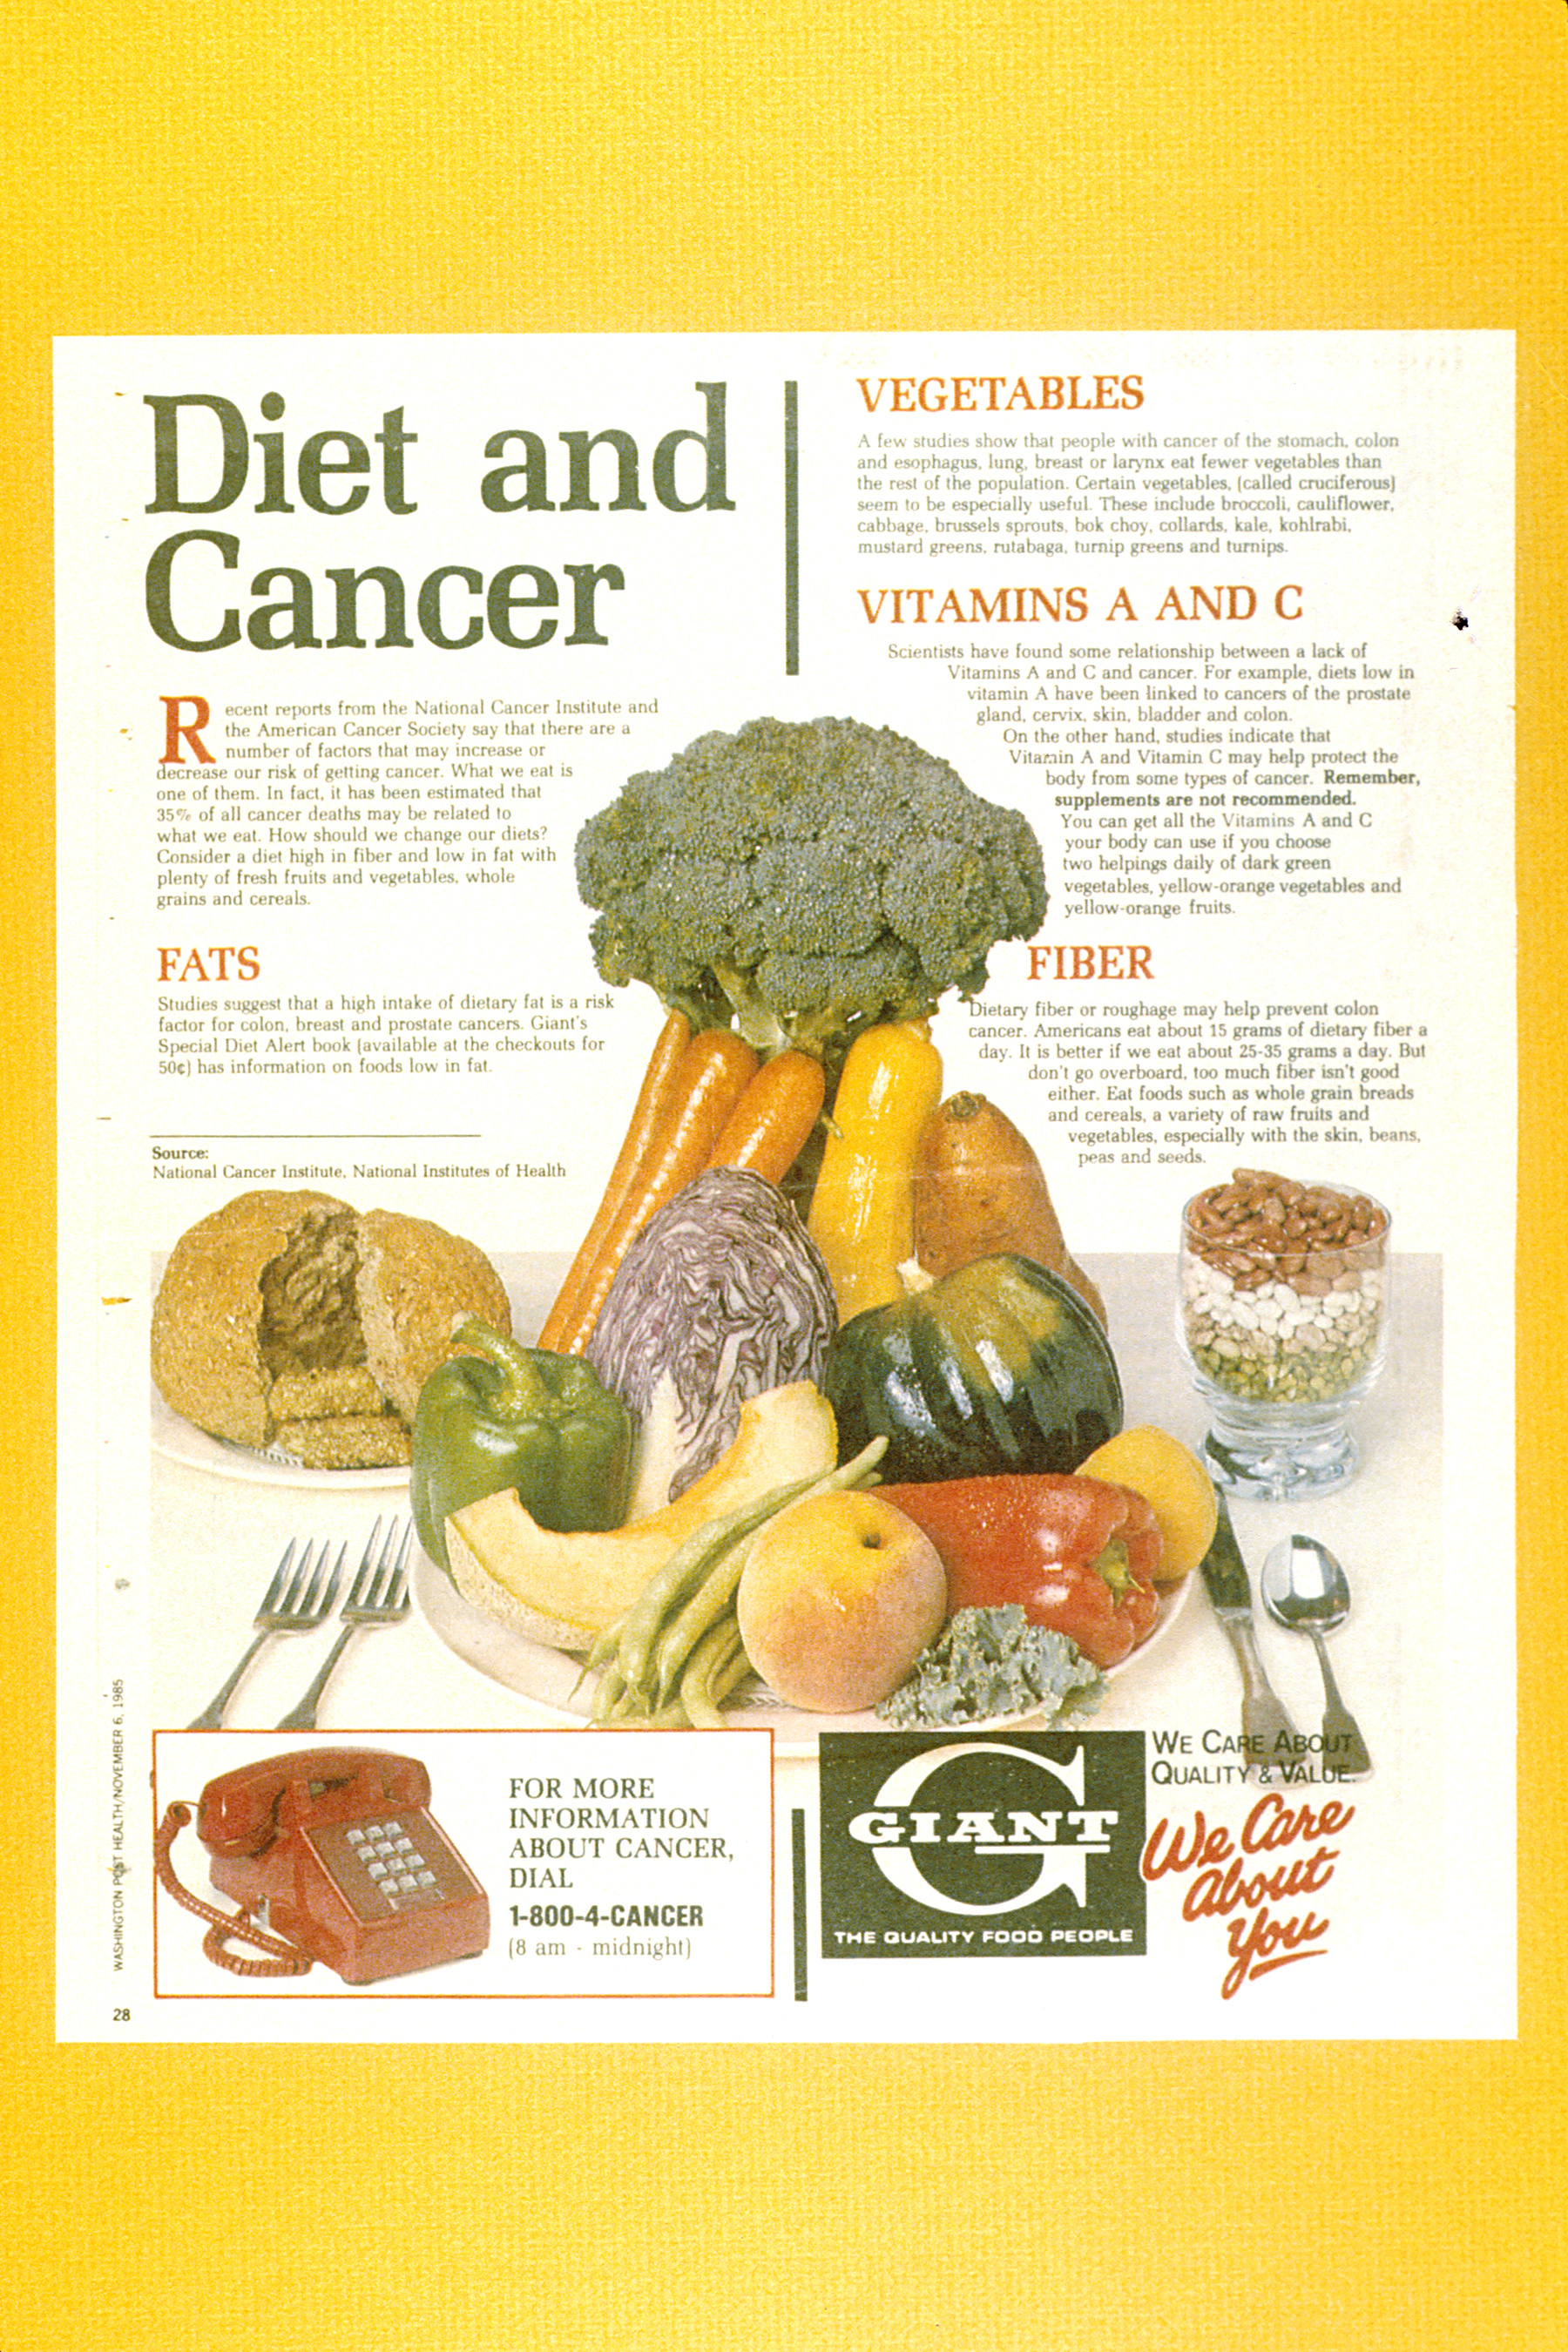 Dietary choices to help prevent breast cancer